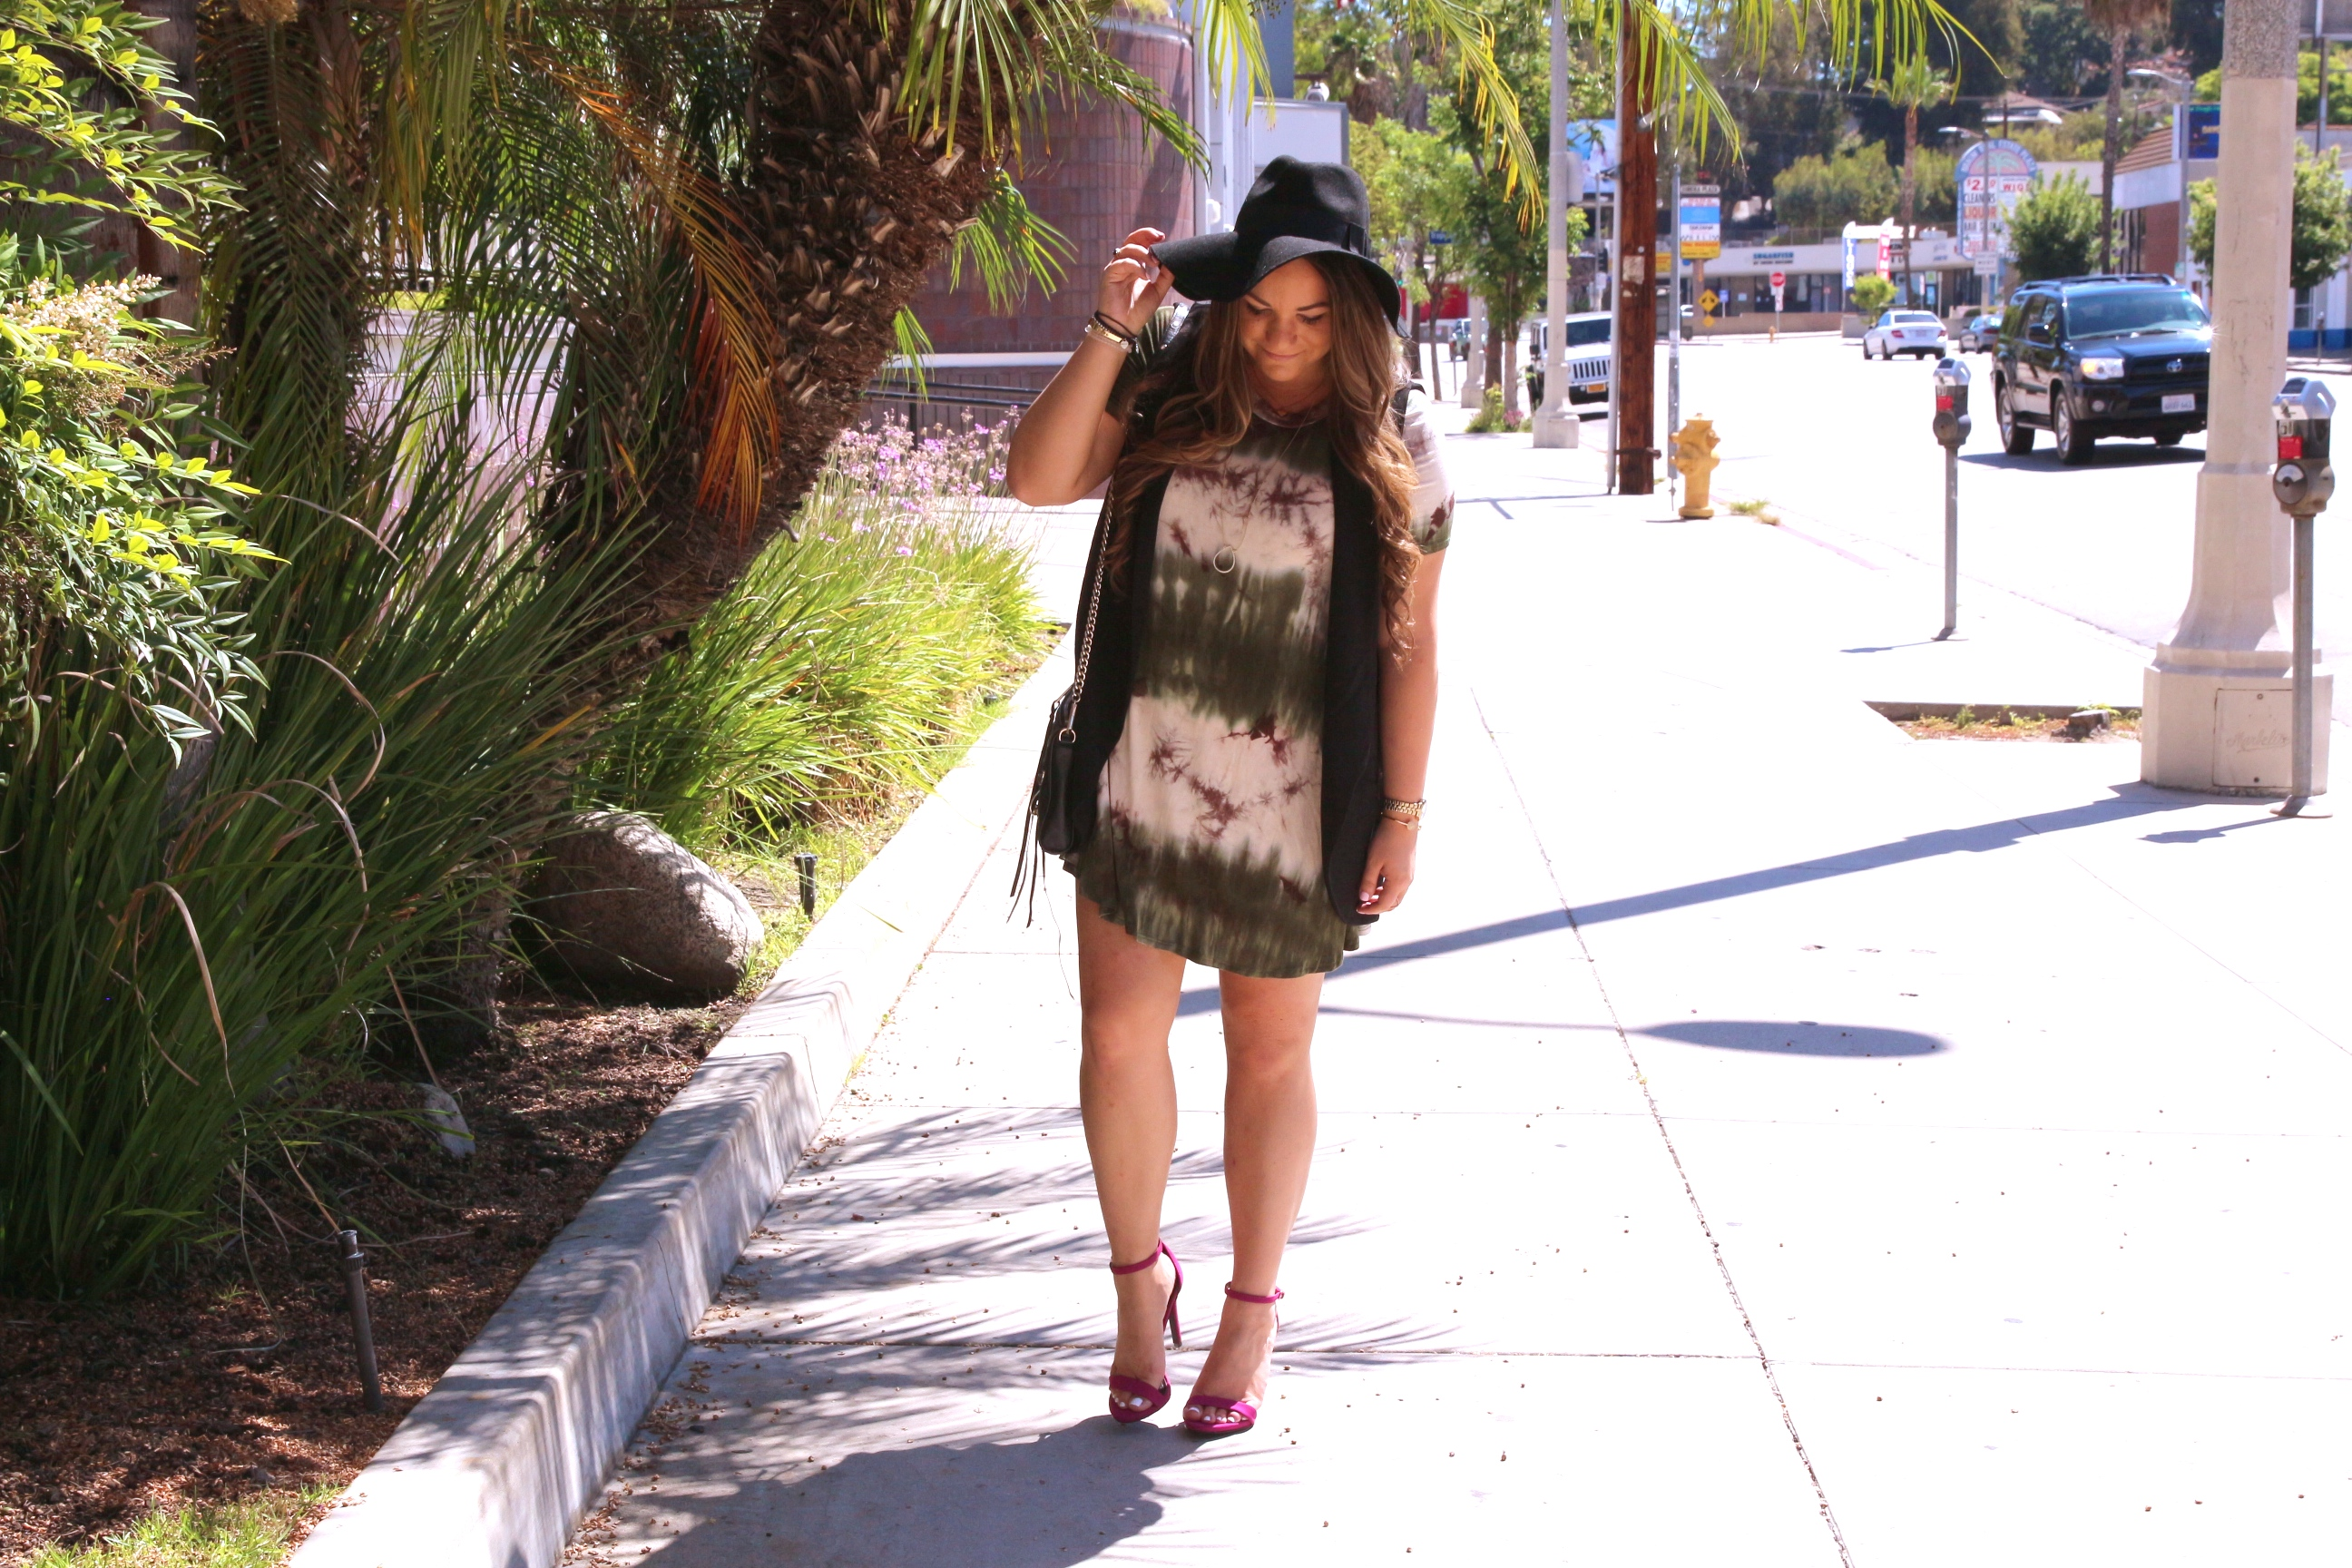 missyonmadison, melissa tierney, fall style, fall fashion, tie dye dress, olive green dress, short sleeve tie dye dress, ami clubwear, pink ankle strap sandals, ami clubwear shoes, mini mac bag, rebecca minkoff mini mac bag, black mini mac bag, outfit inspo, fall outfit inspo, black floppy hat, felt floppy hat, topshop floppy hat, black sleeveless vest, nordstrom black sleeveless vest,